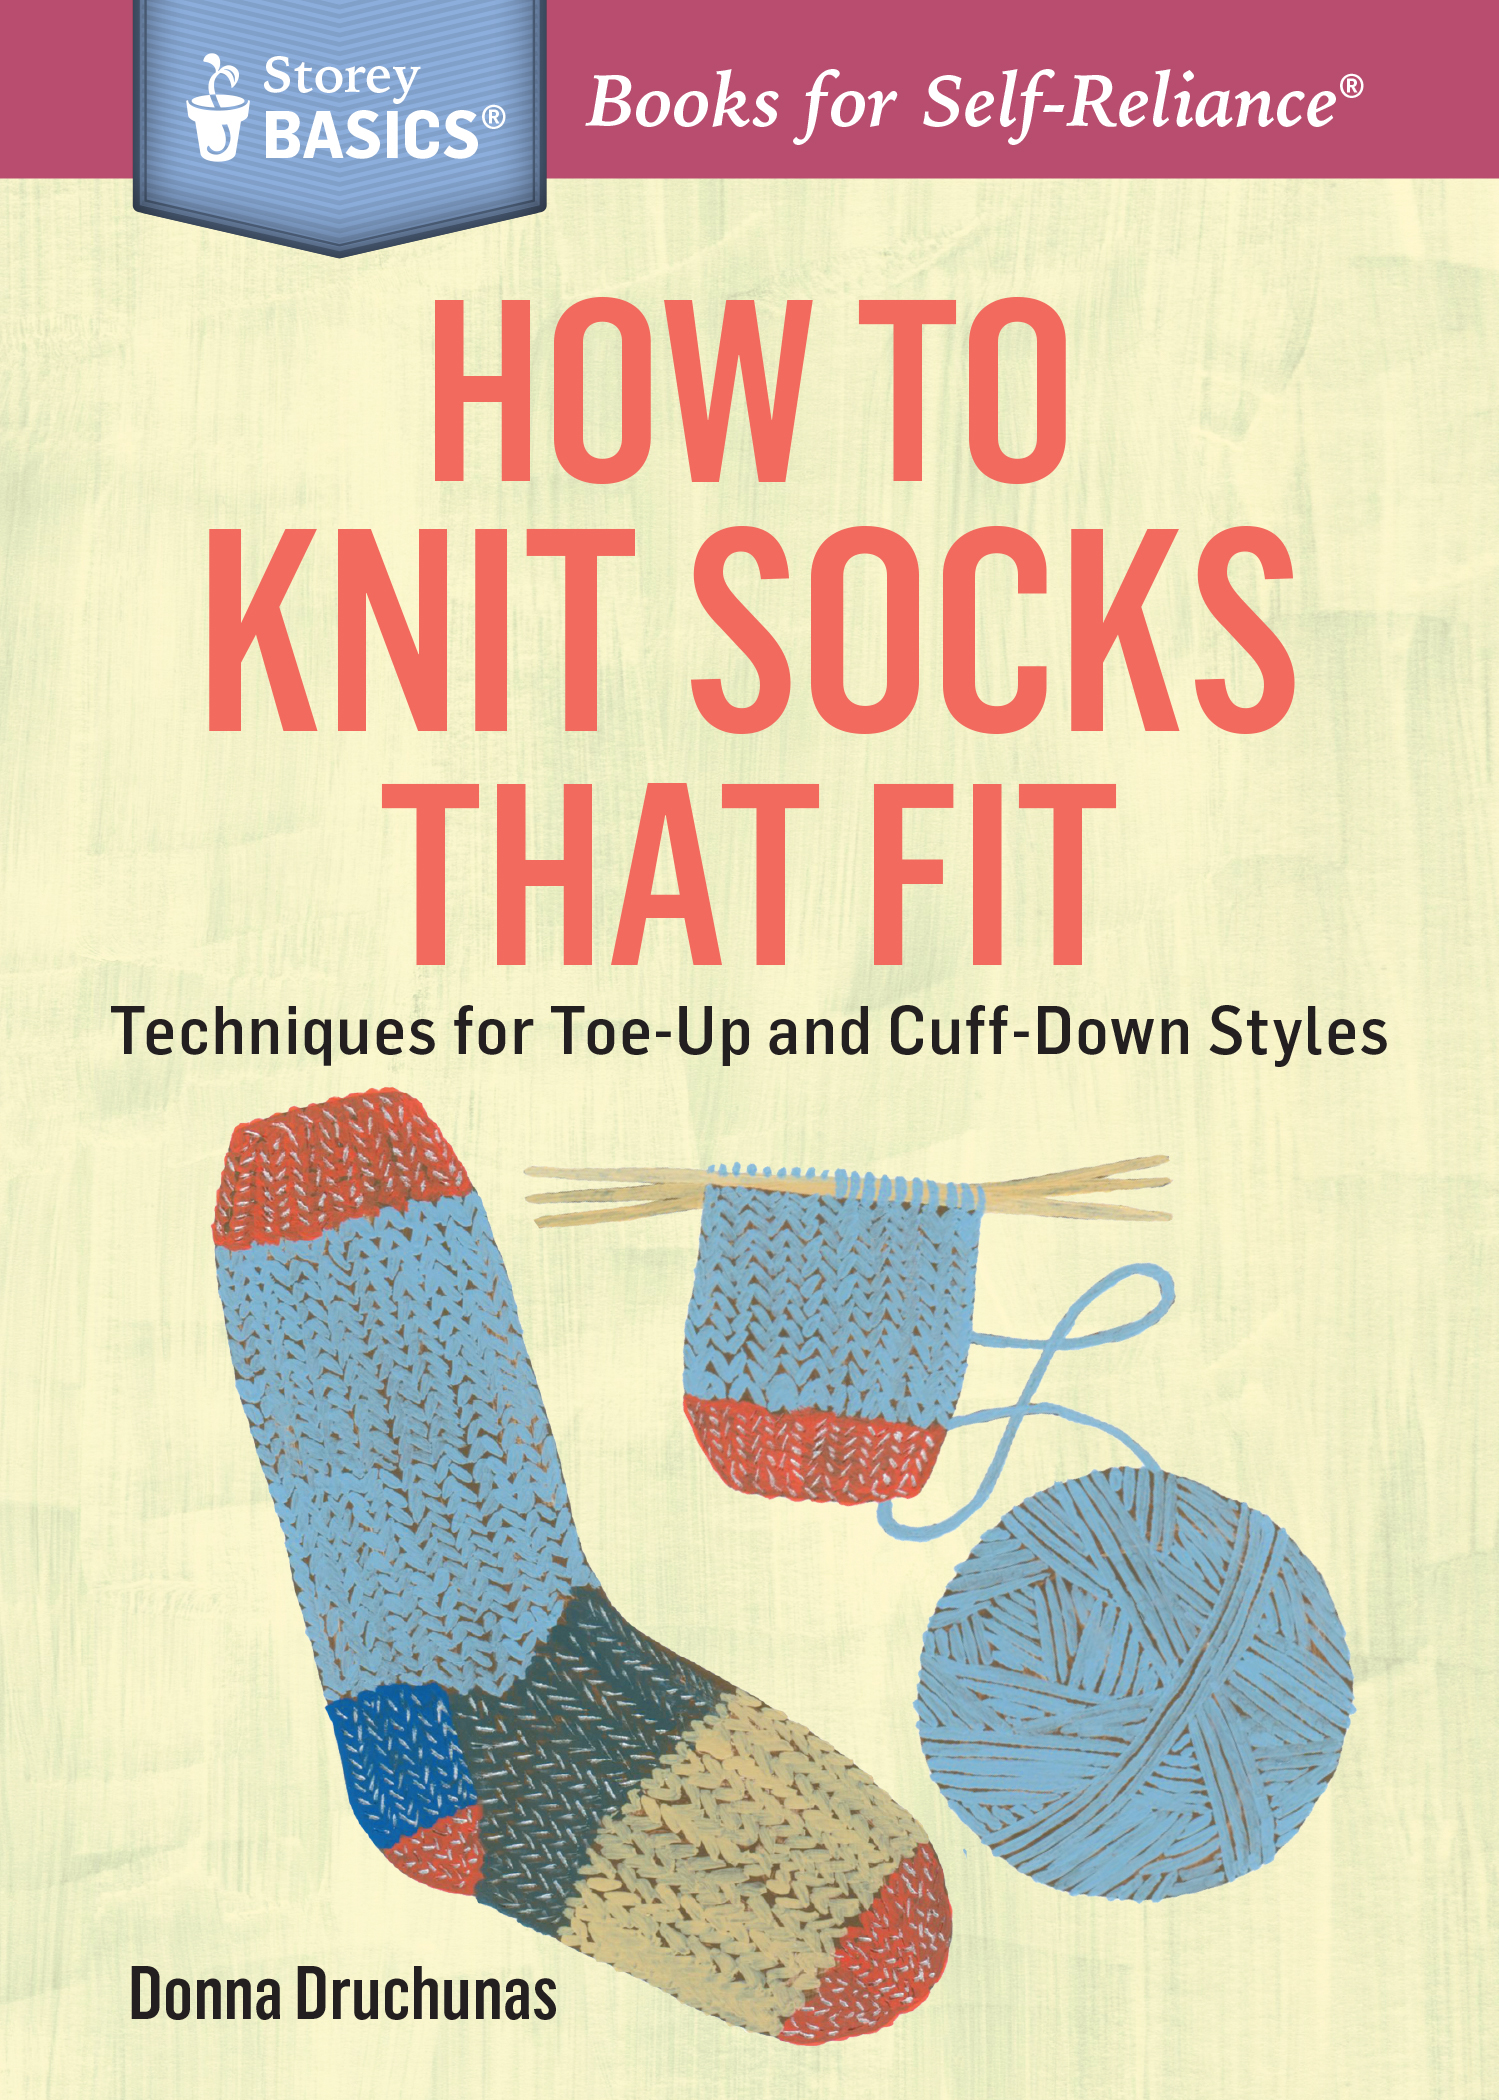 How to Knit Socks That Fit Techniques for Toe-Up and Cuff-Down Styles. A Storey BASICS® Title - Donna Druchunas